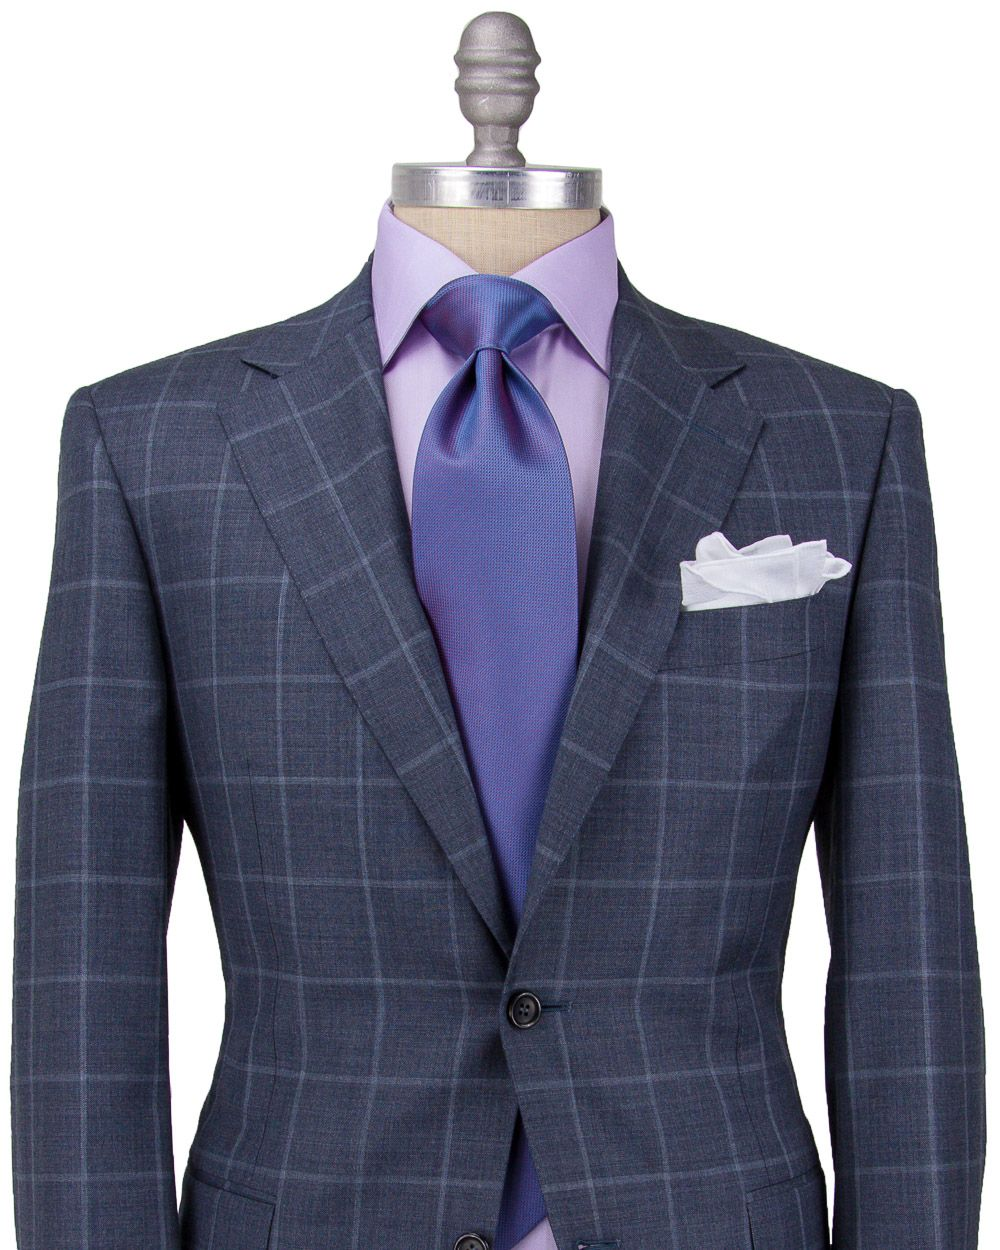 Canali grey windowpane suit apparel men 39 s Blue suit shirt tie combinations